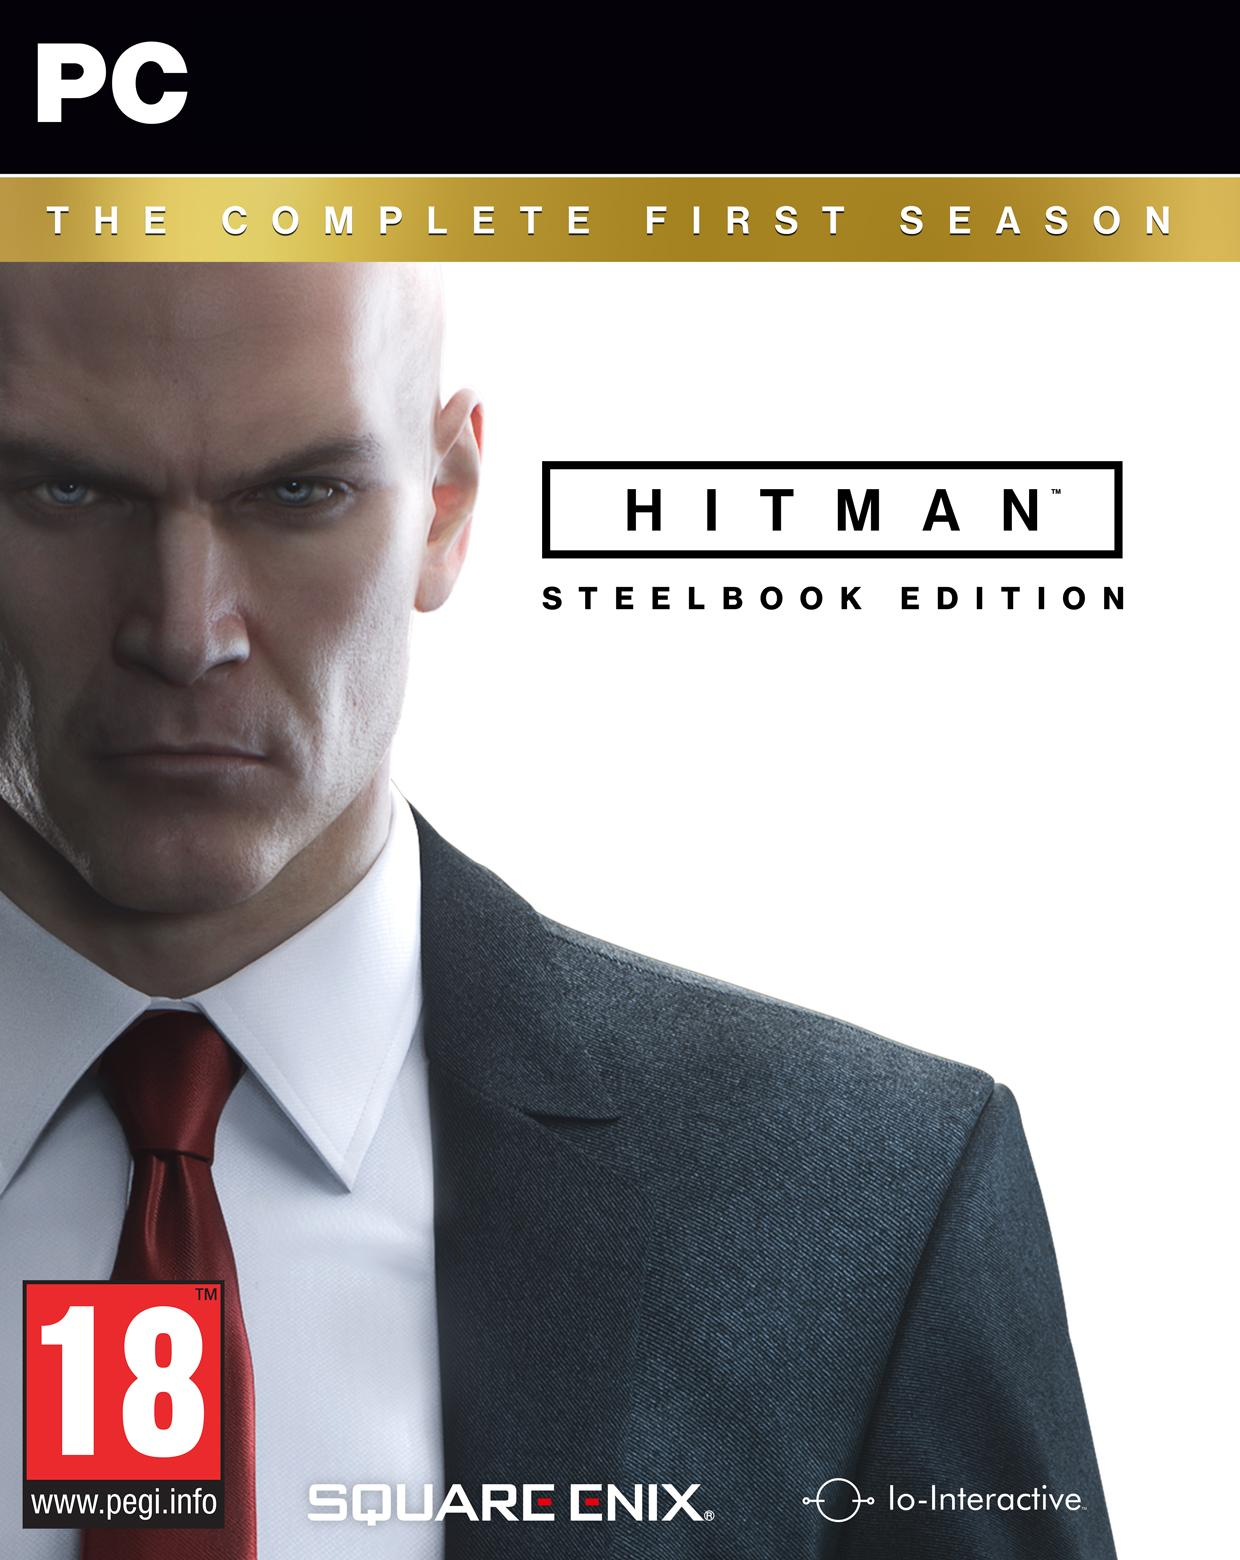 HITMAN THE COMPLETE FIRST SEASON STEELBOOK EDITION - PC